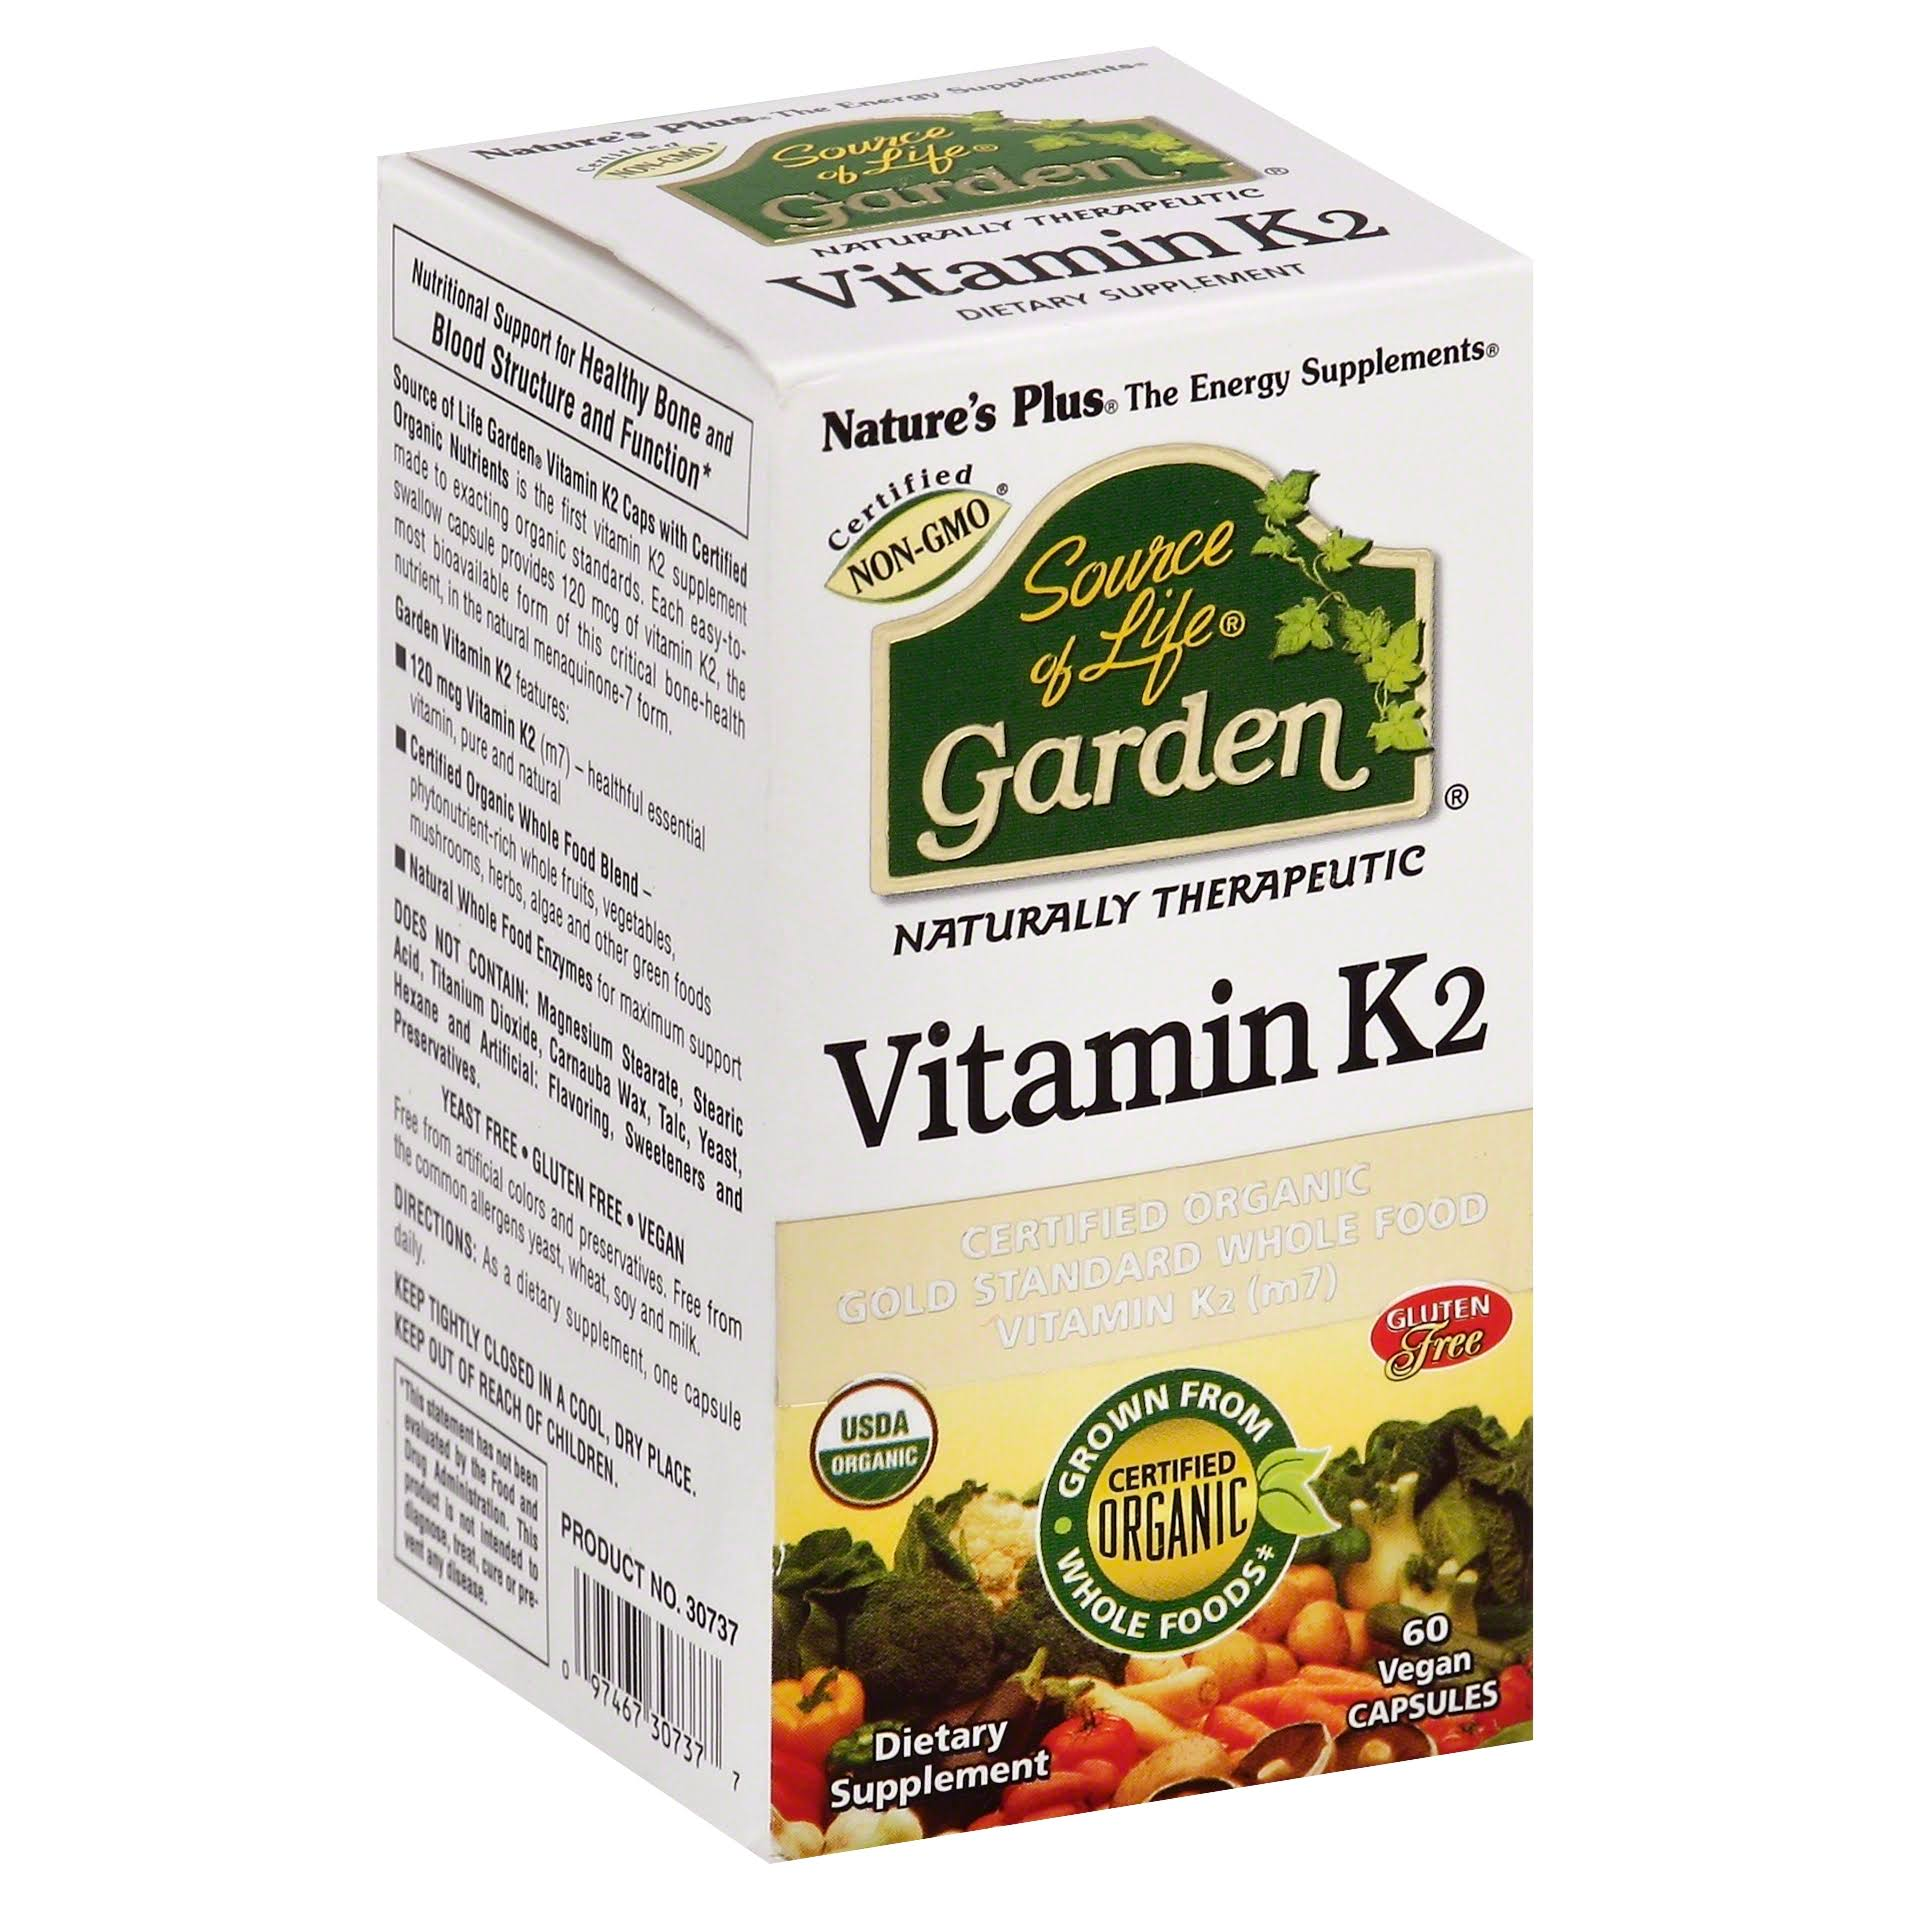 Nature's Plus Source of Life Garden - Vitamin K2 , 60 caps